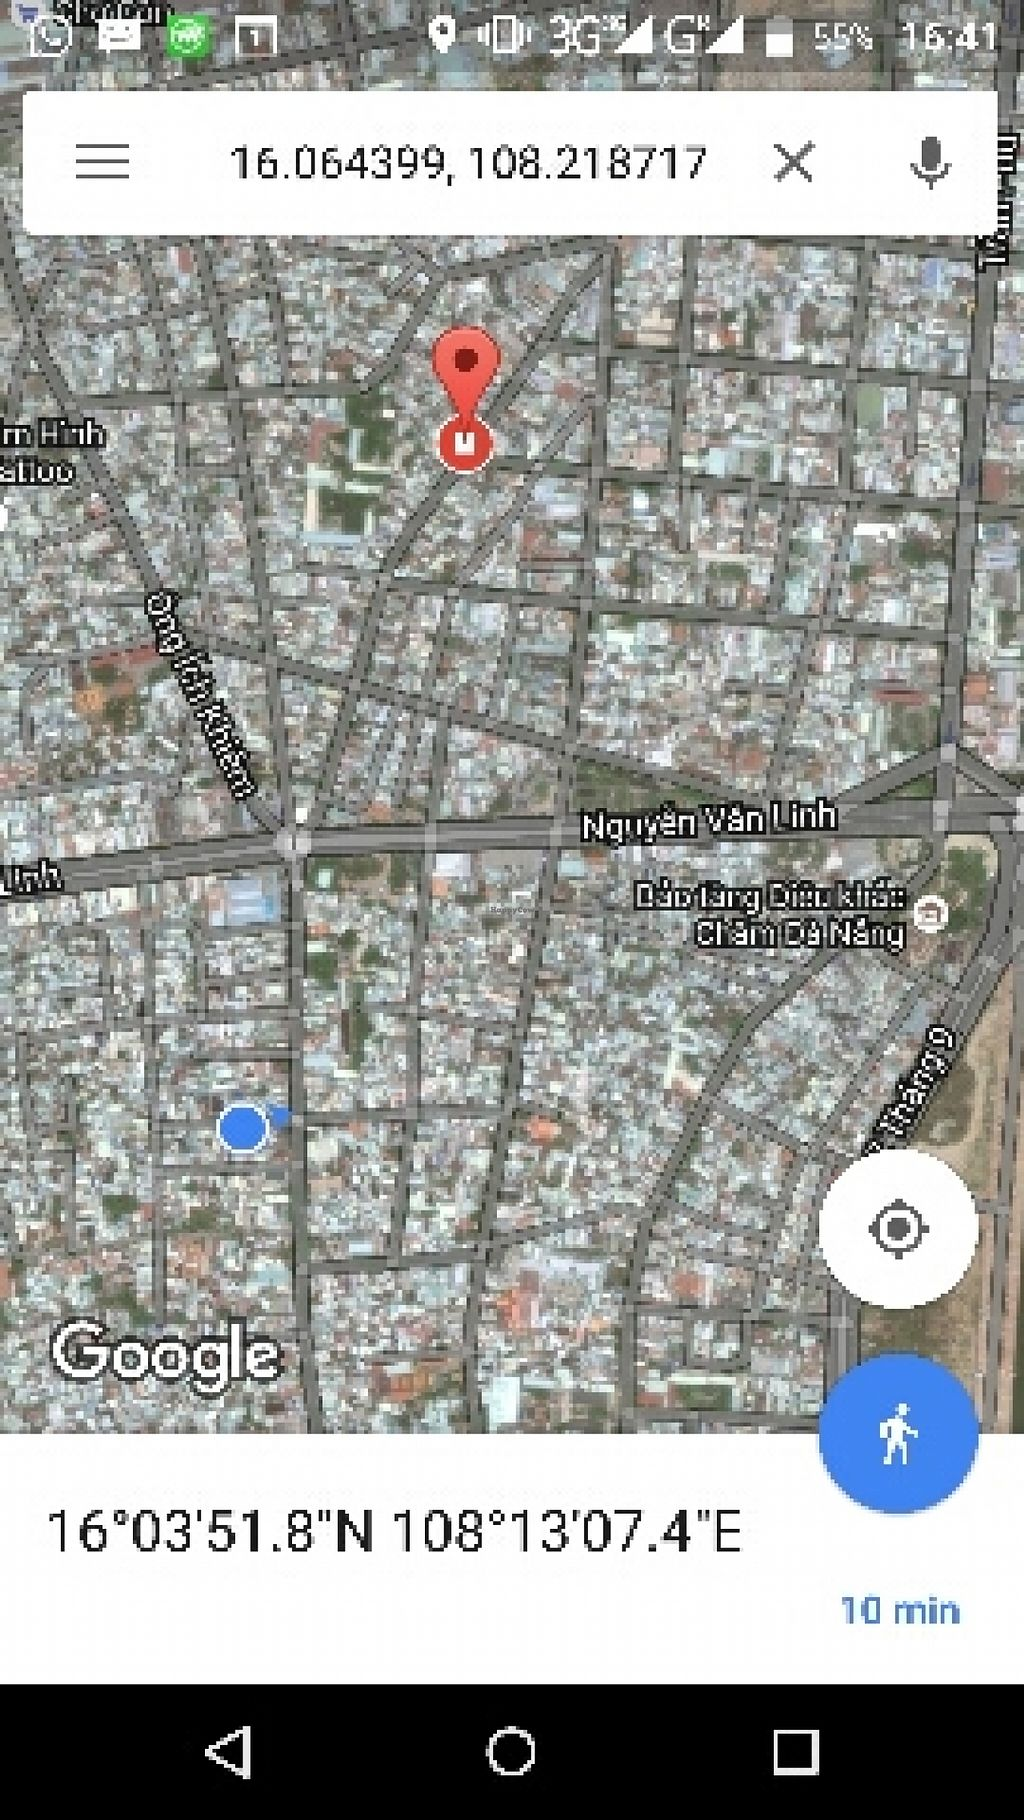 """Photo of Thien Duyen  by <a href=""""/members/profile/florisn"""">florisn</a> <br/>Location on current map is inaccurate. The blue dot indicates the actual location <br/> May 12, 2016  - <a href='/contact/abuse/image/13696/148597'>Report</a>"""